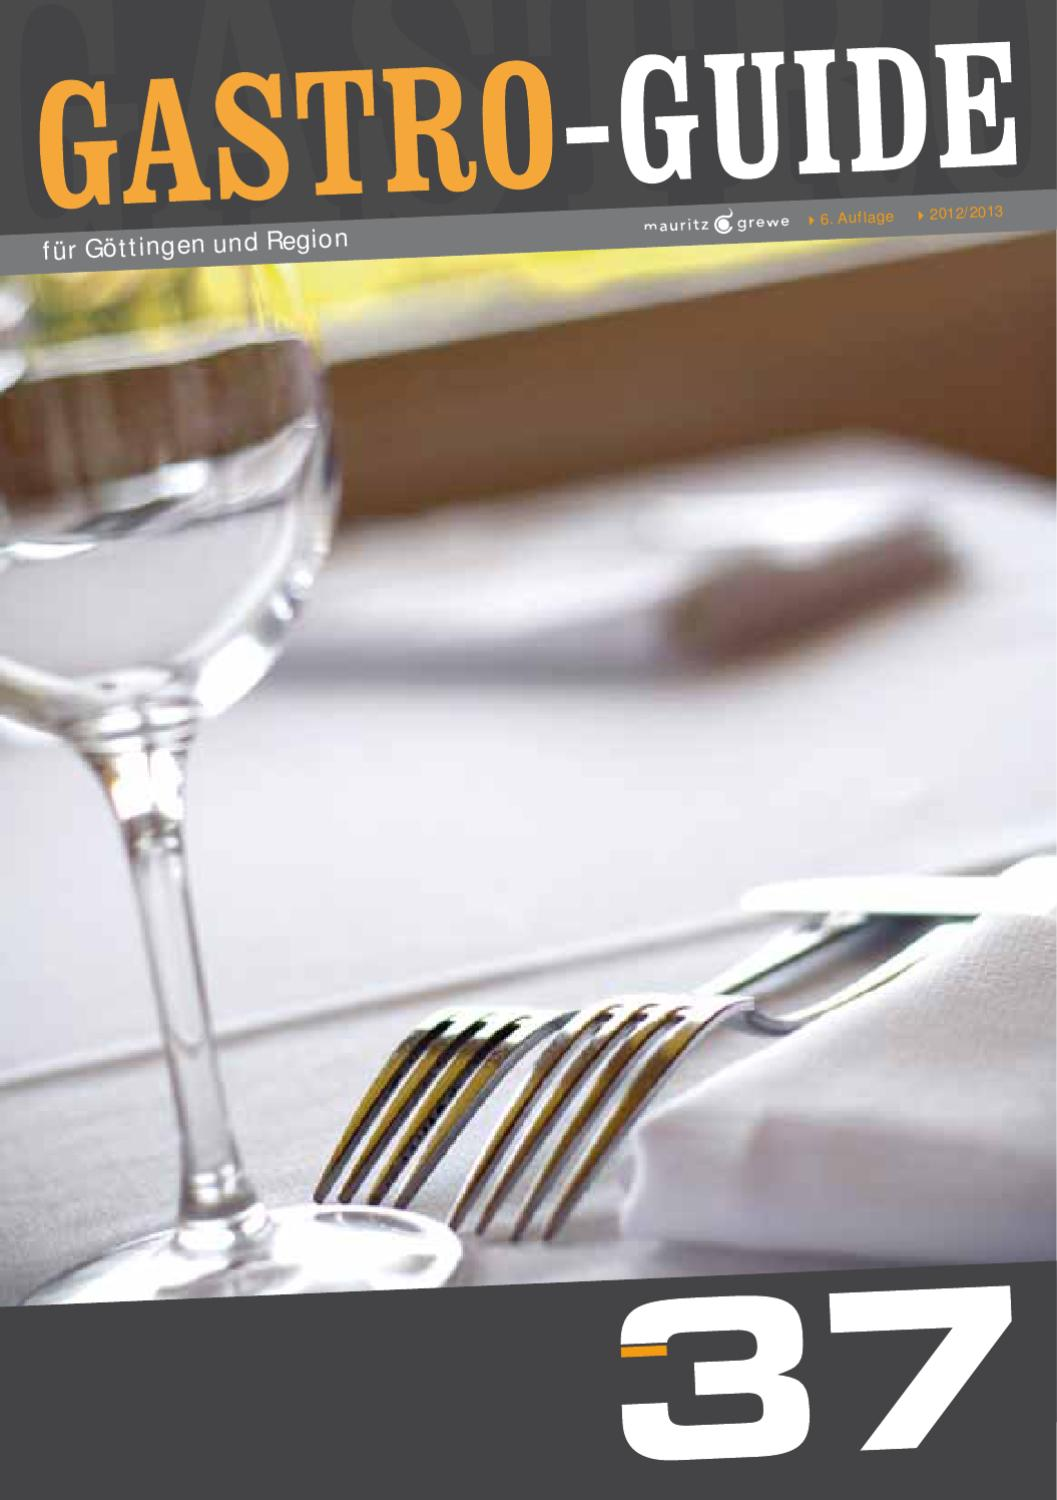 Gastro-Guide 2012 by Lars Walter - issuu